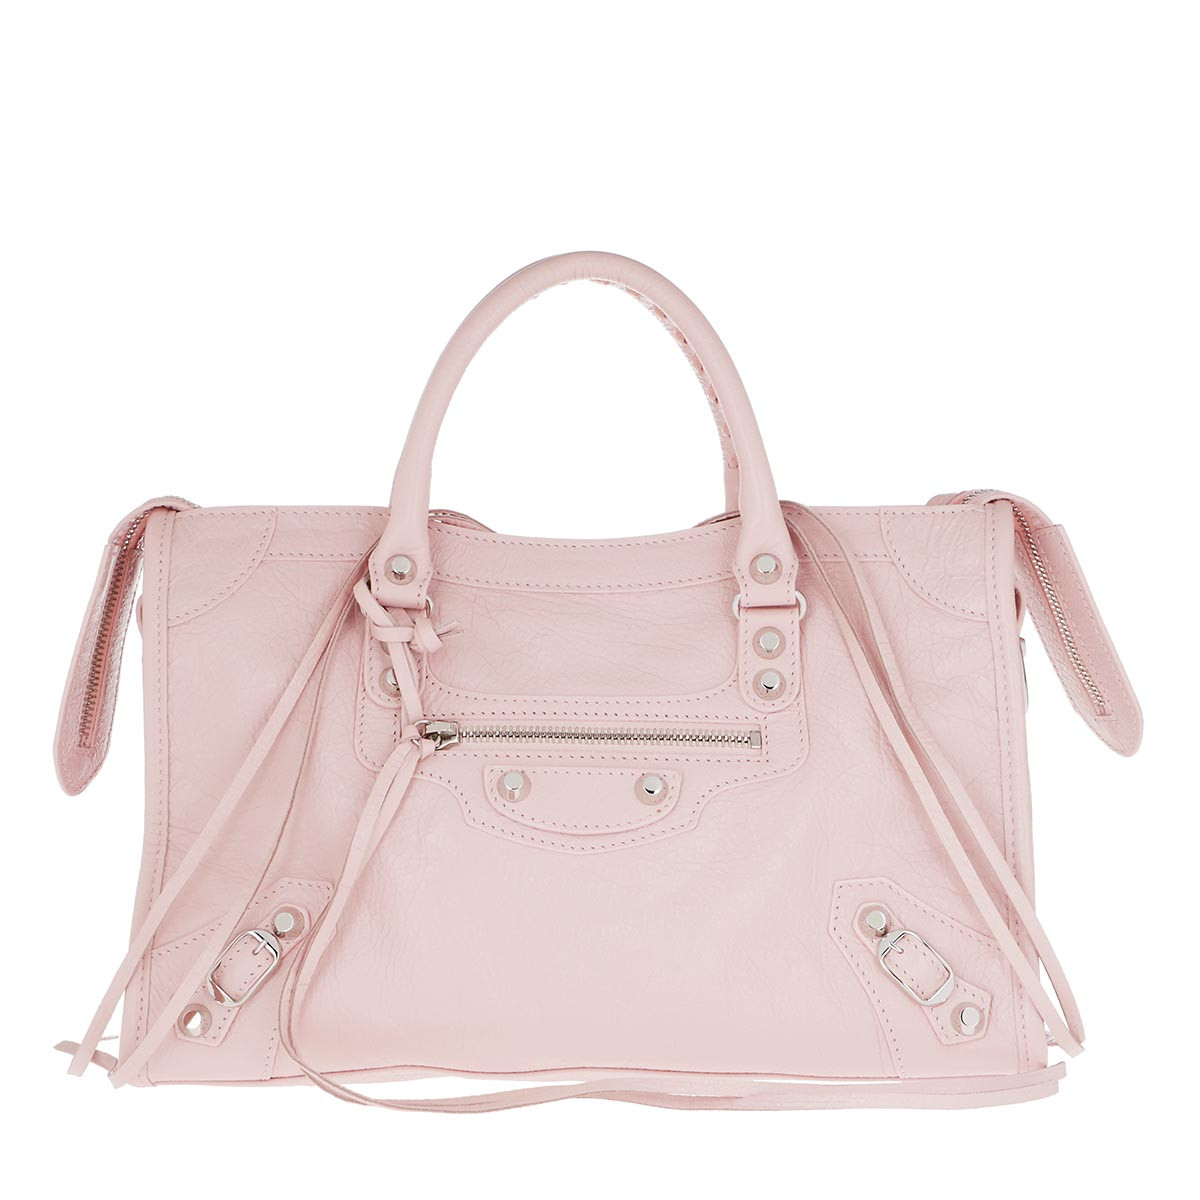 Balenciaga Tote - City Tote Tassel Studded Leather Light Rose - in rosa - für Damen